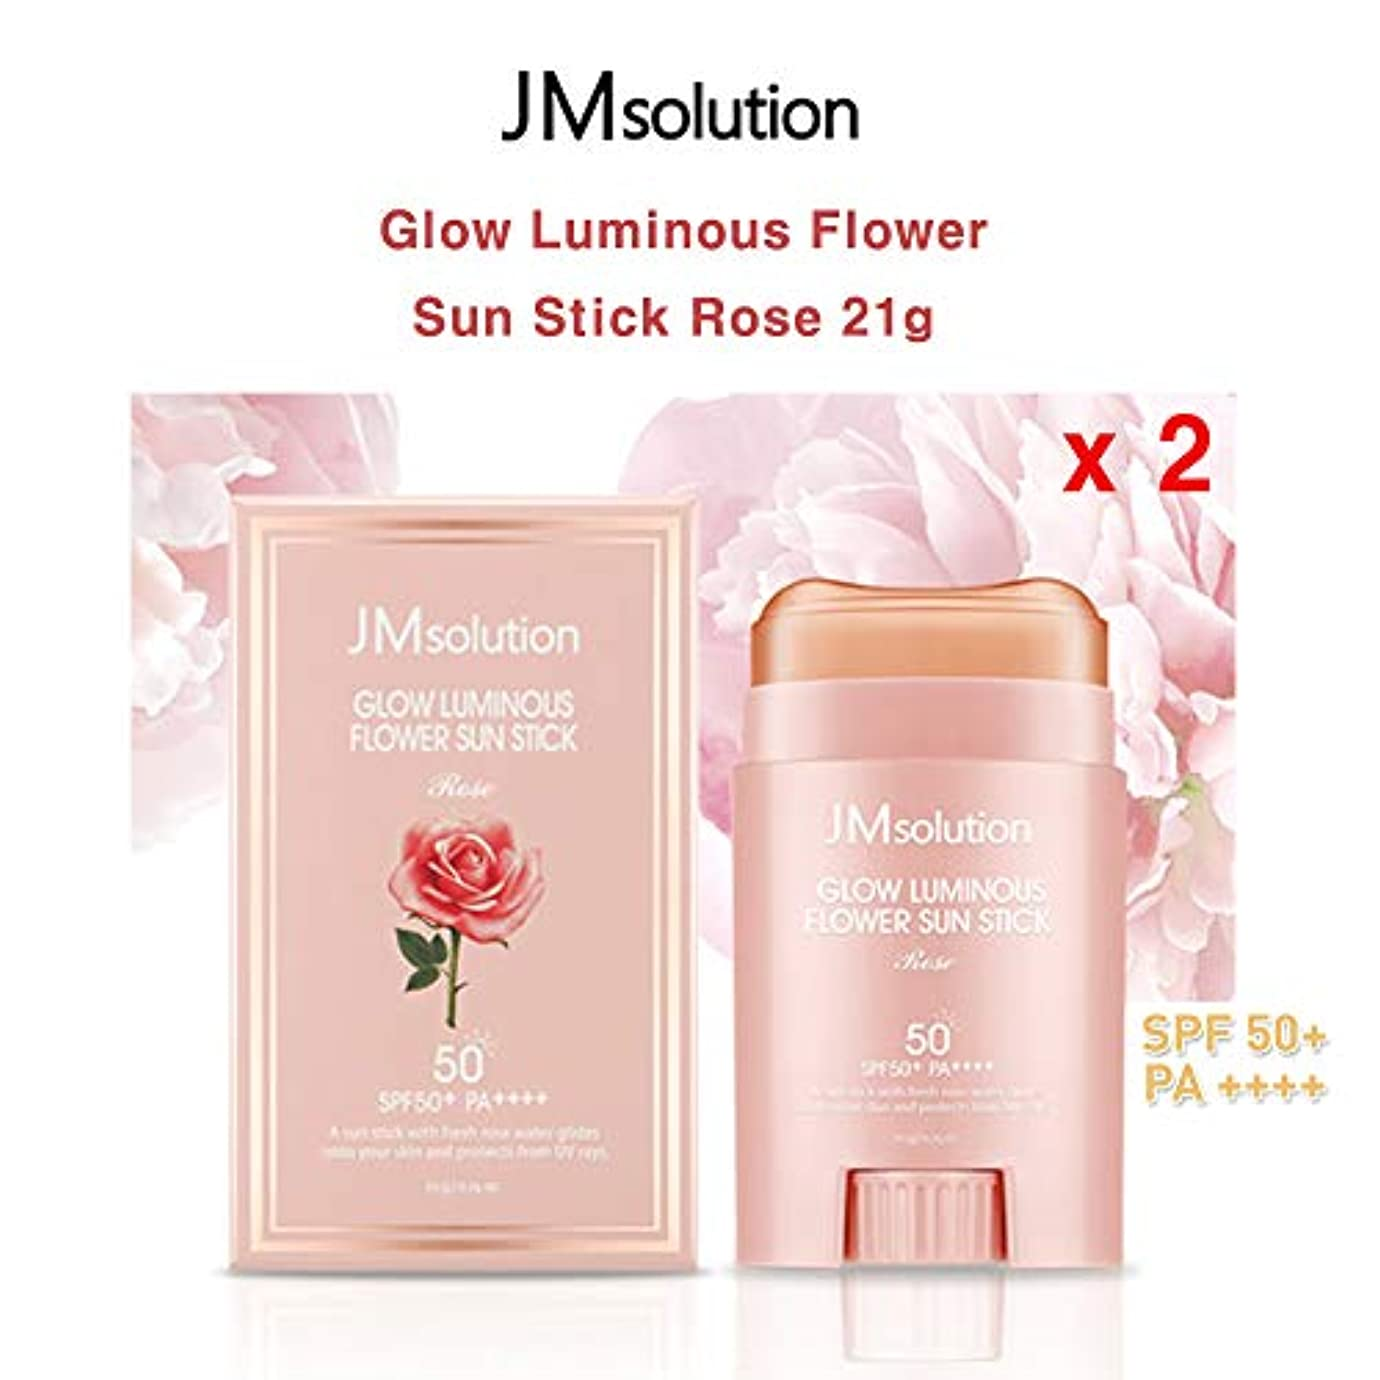 歯科医カレンダー火山学JM Solution ★1+1★ Glow Luminous Flower Sun Stick Rose 21g (spf50 PA) 光る輝く花Sun Stick Rose